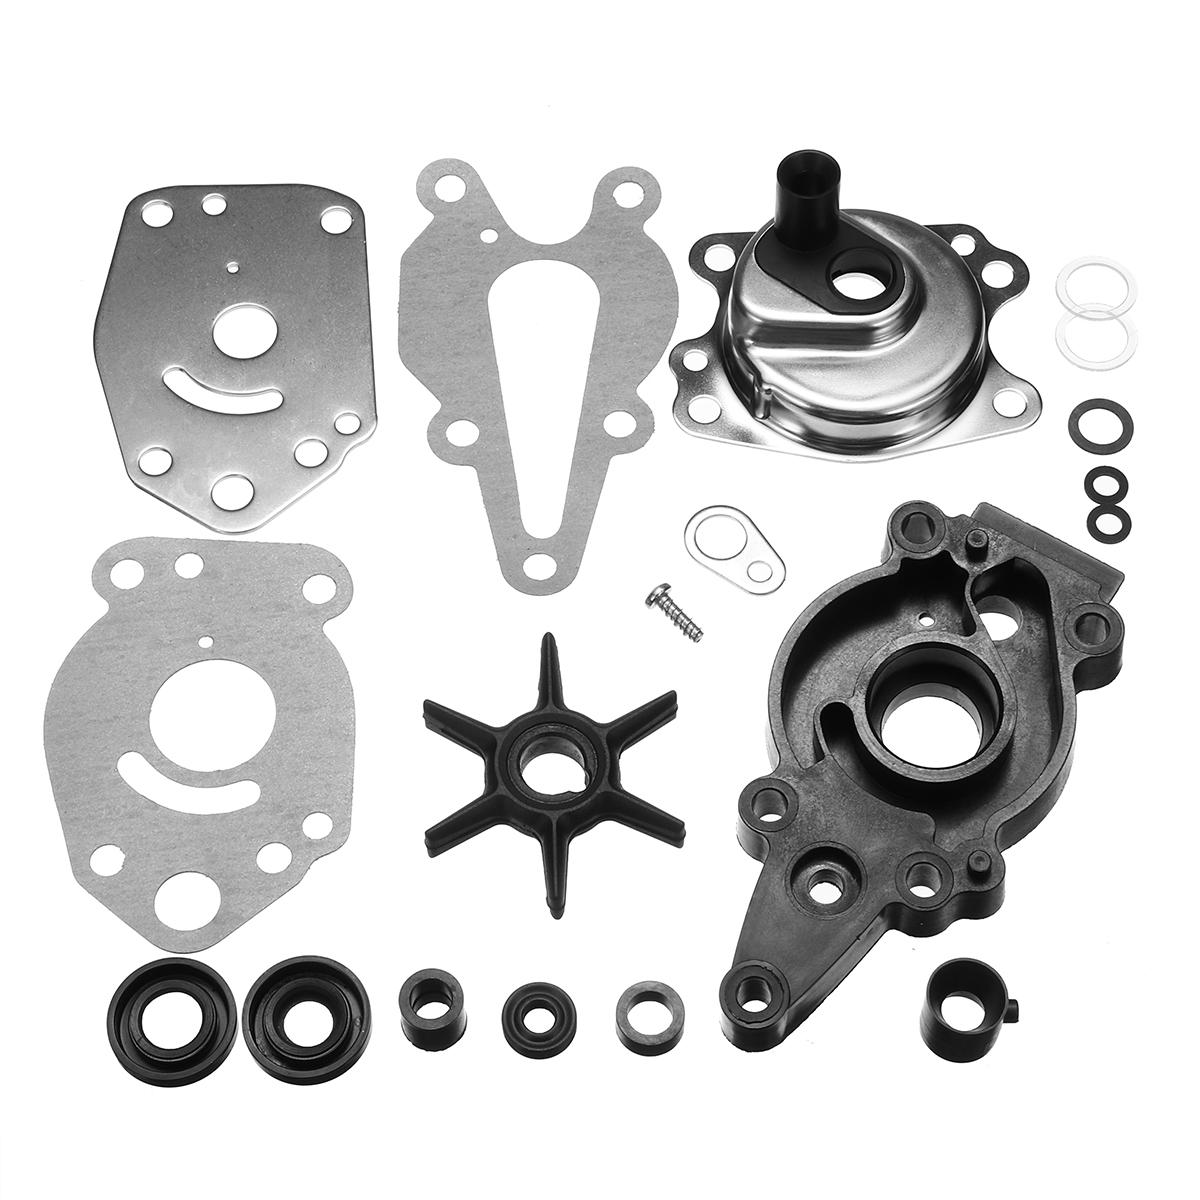 Mercury 9.9 15HP Outboard Water Pump Impeller Replacement Kit  46-42089A5